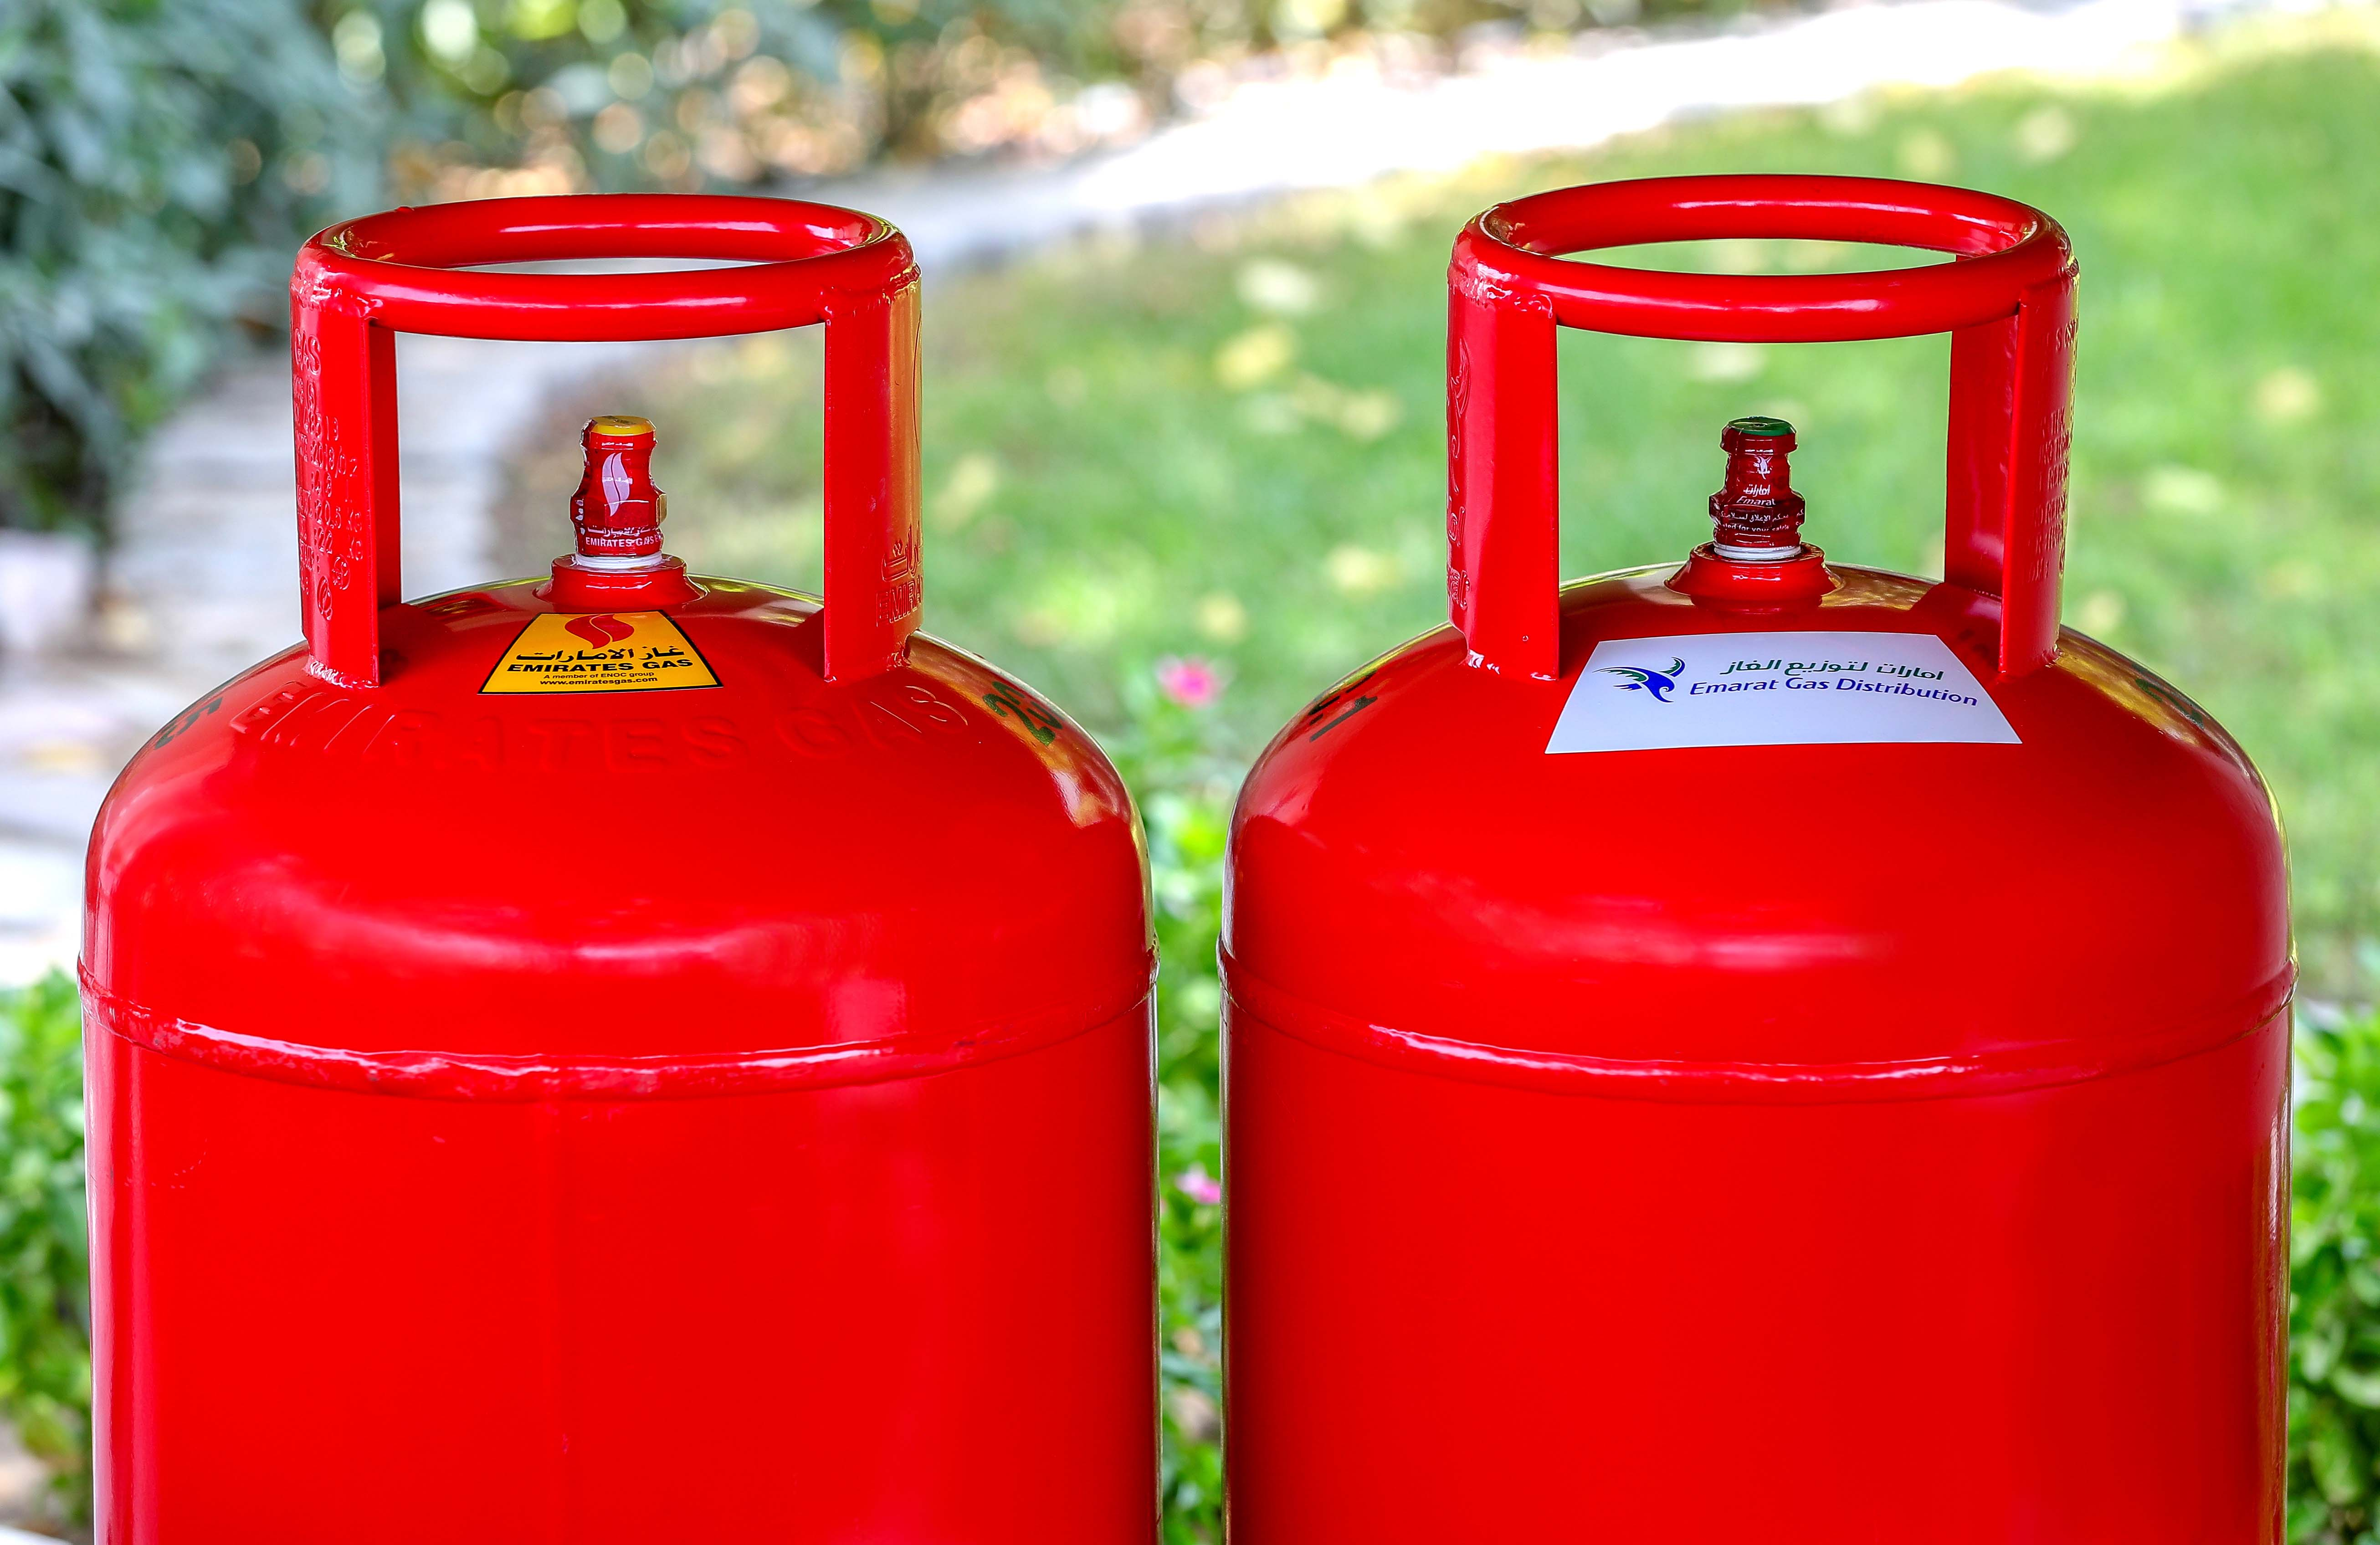 EMGAS & Emarat Announce new LPG Cylinder Seals in Dubai to Ensure Best-in-class Quality and Safety Assurance